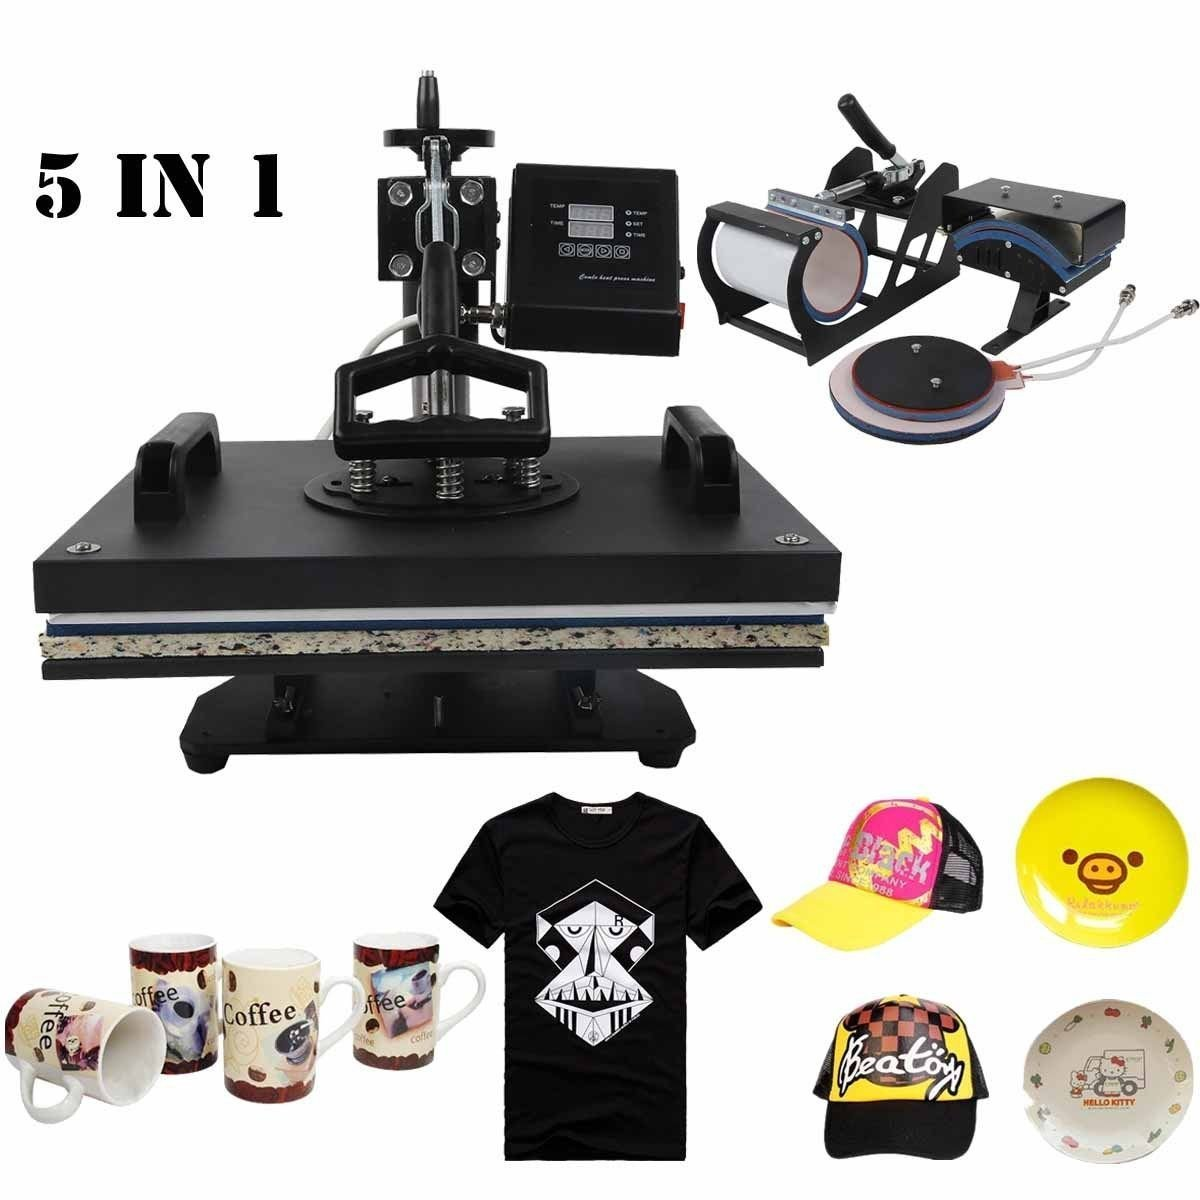 Tengchang 5 in 1 Heat Press Machine Digital Transfer Sublimation T-Shirt Mug Hat Plate Cap 15 x 12'' by XFMOTO